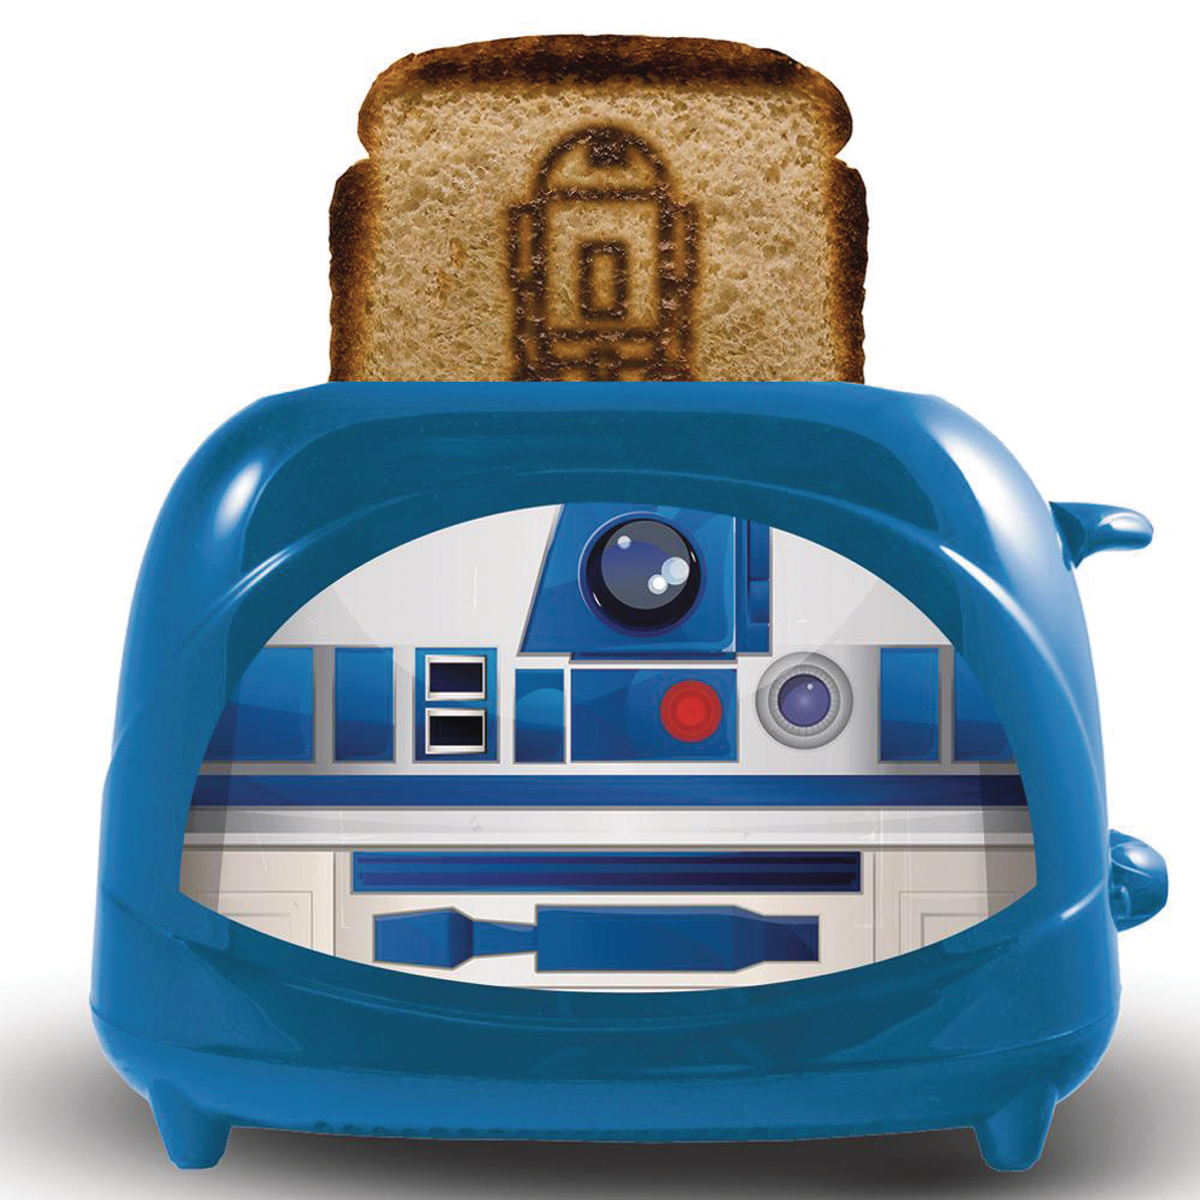 STAR WARS R2D2 EMPIRE COLLECTION TOASTER